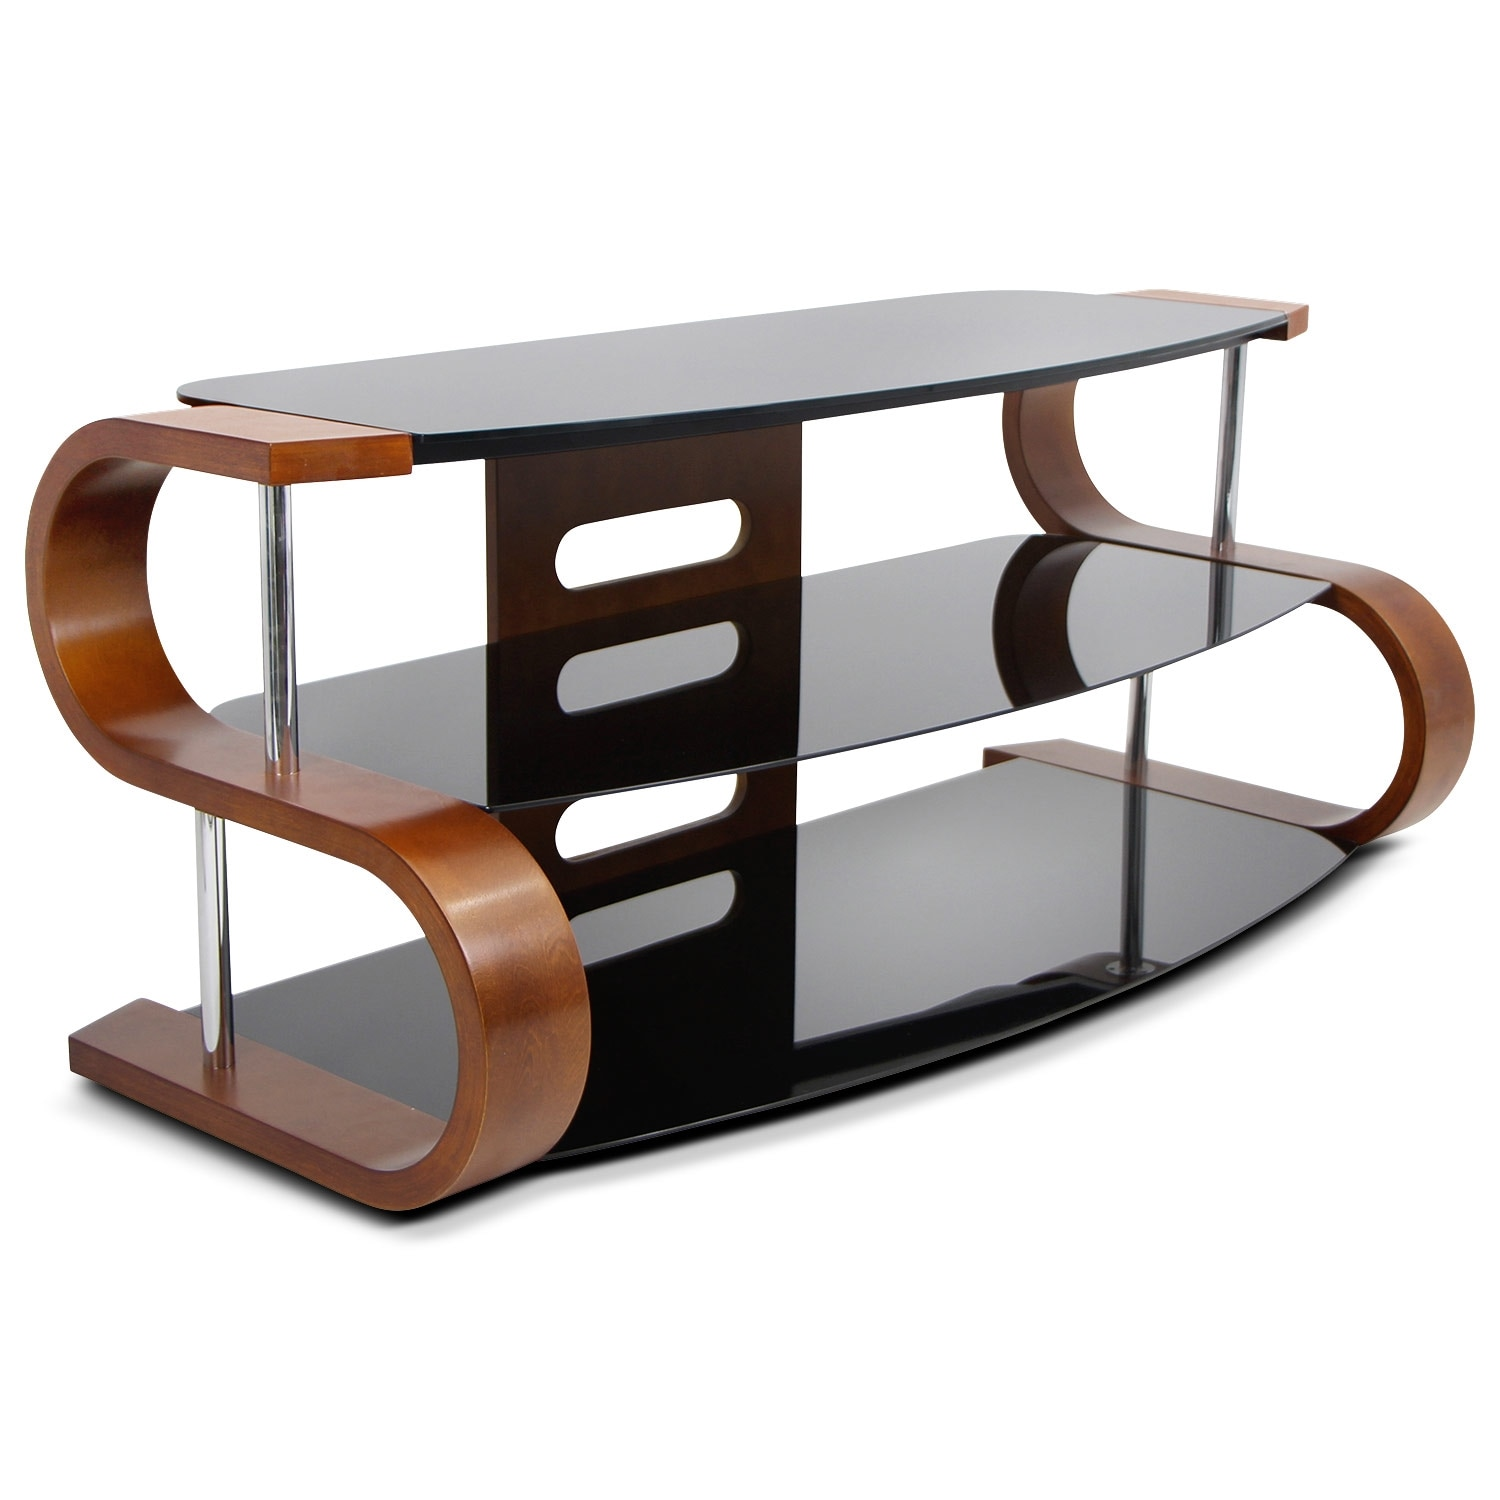 Tv stands media centers storage cabinets american for Mueble tv esquina